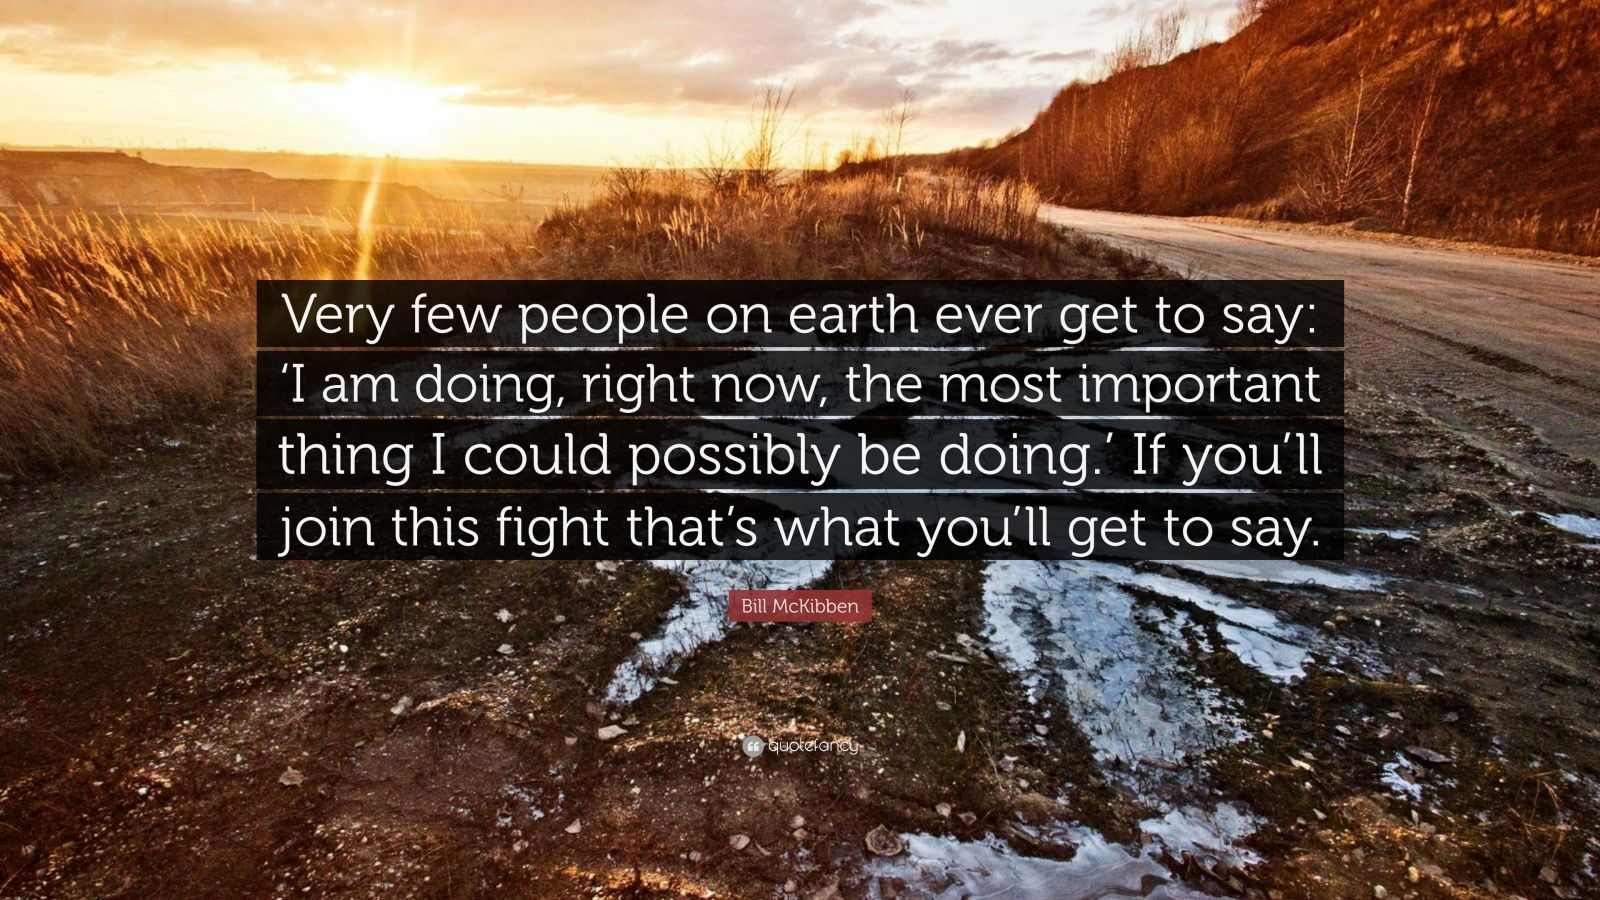 """Bill McKibben Quote: """"Very few people on earth ever get to say: 'I am doing, right now, the most important thing I could possibly be doing.' If you'll join this fight that's what you'll get to say."""""""